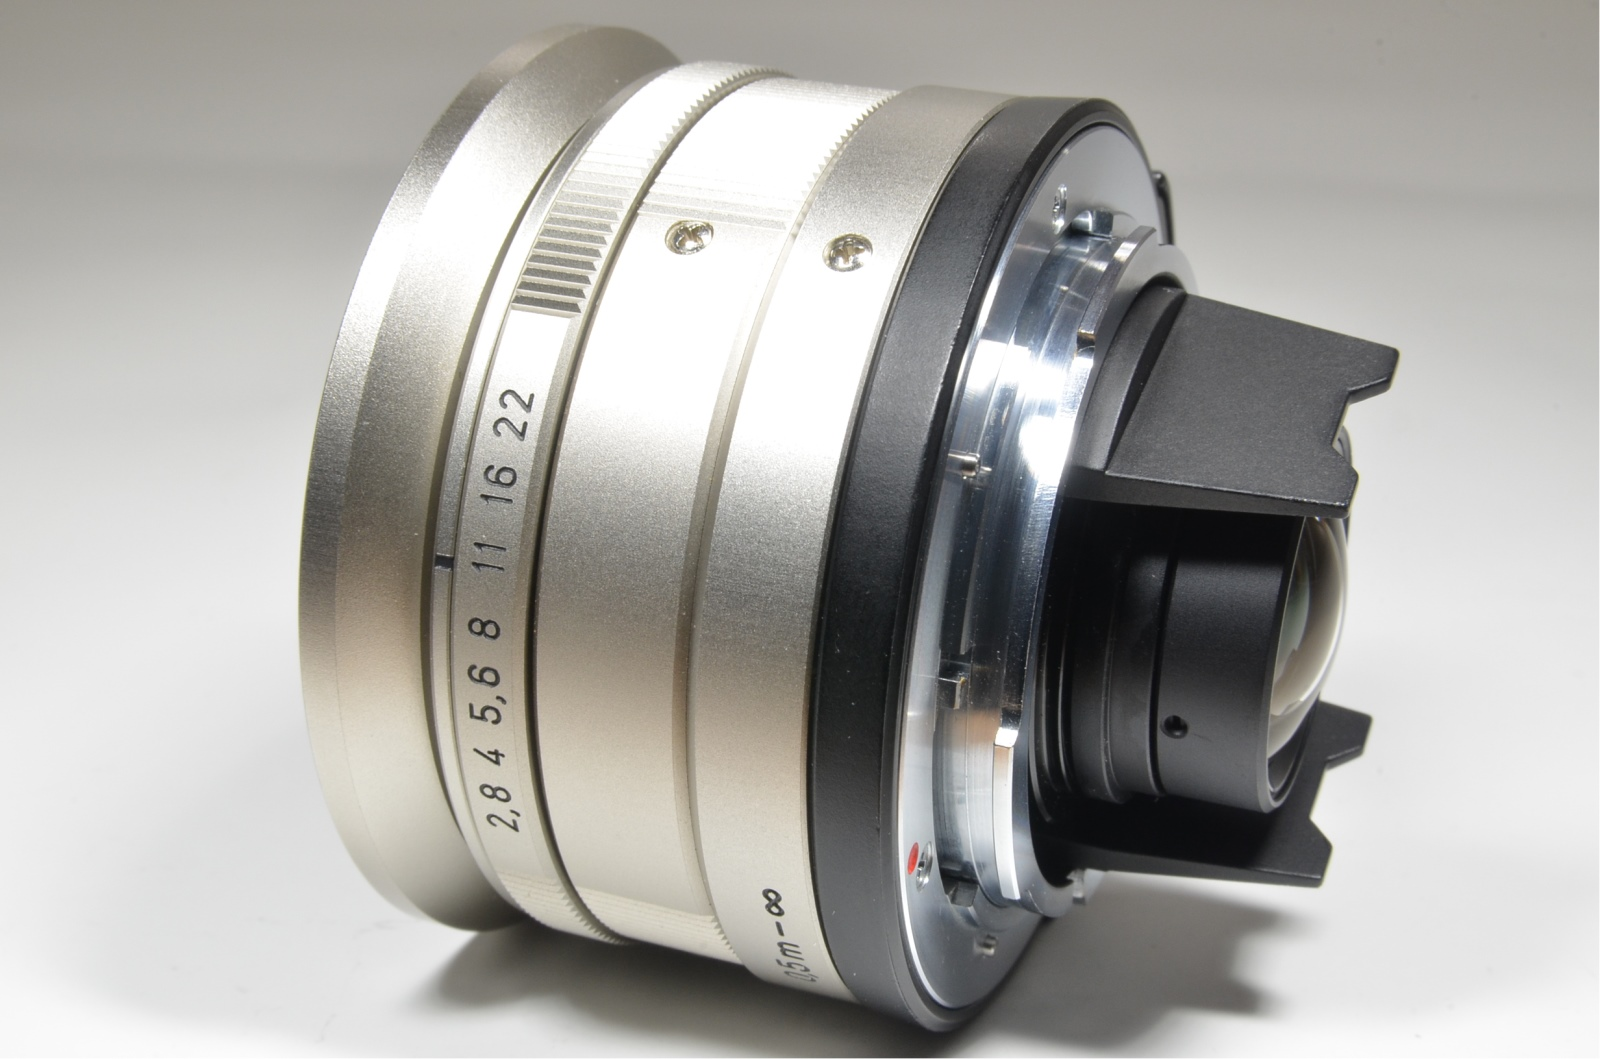 contax carl zeiss t* biogon 21mm f2.8 lens with view finder for g1 g2